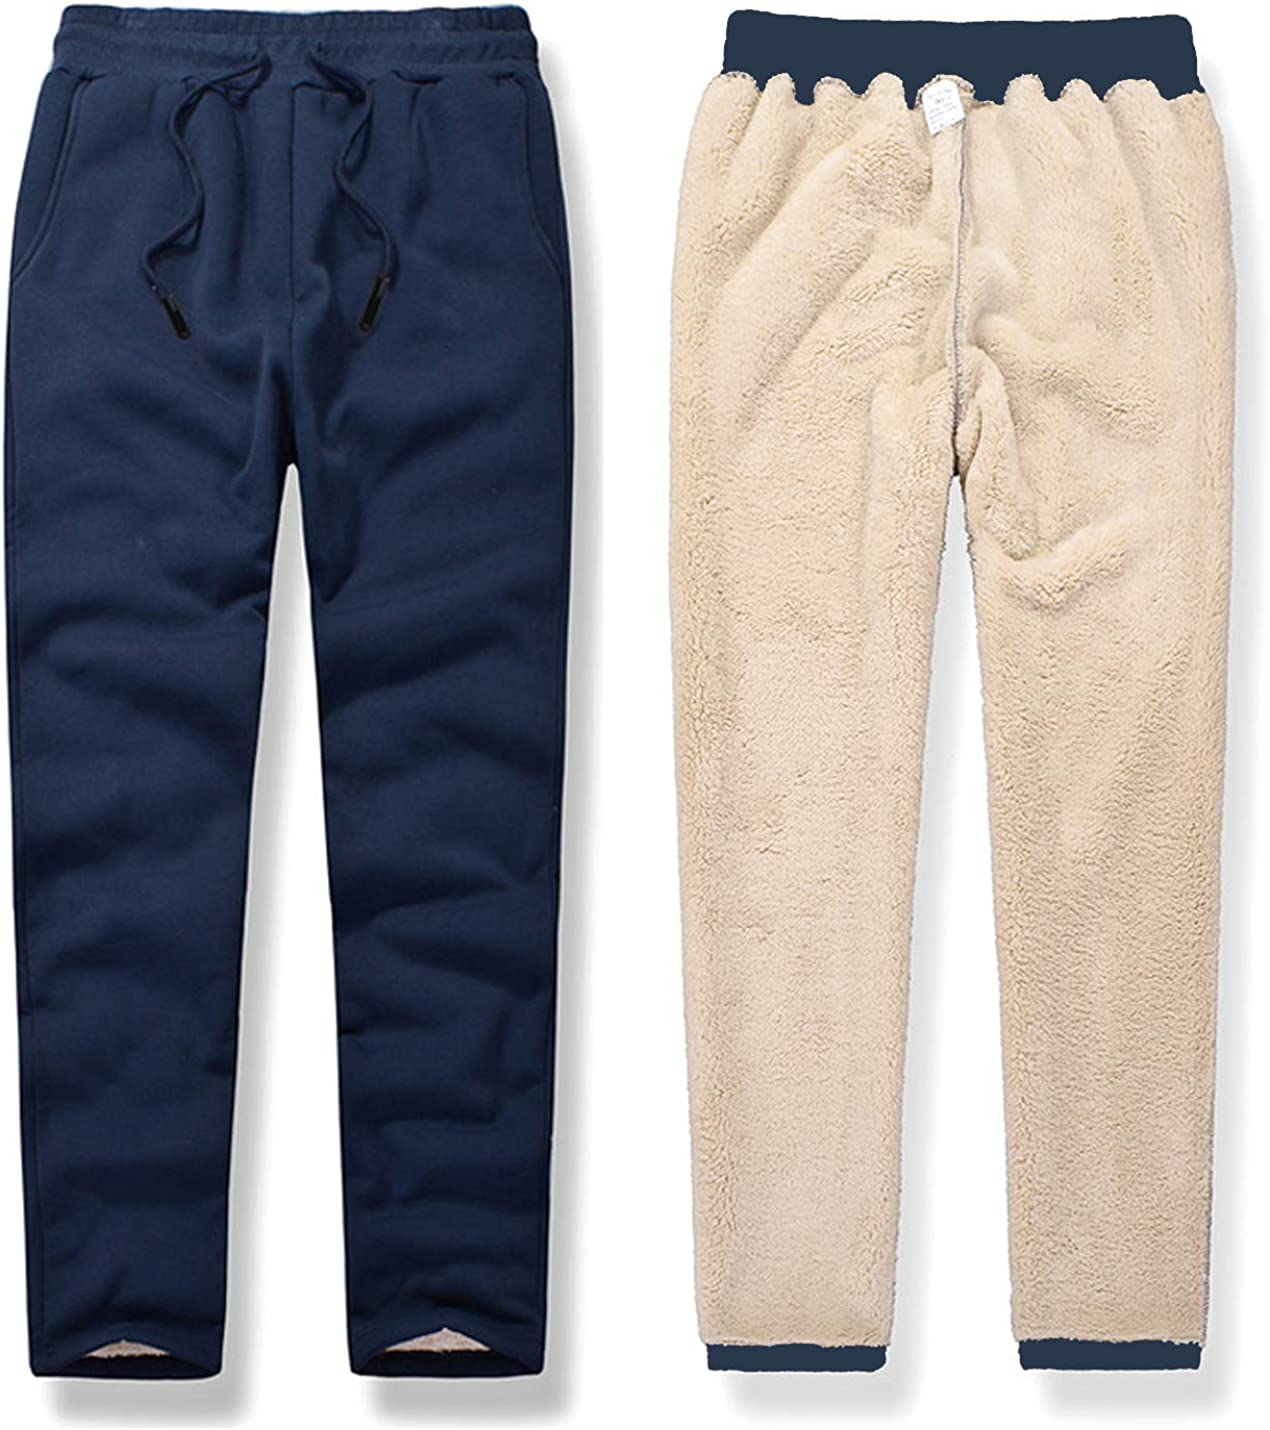 Washington Mall Gihuo Men's Athletic Winter Max 87% OFF Track Sweatpants Lined Sherpa Pants